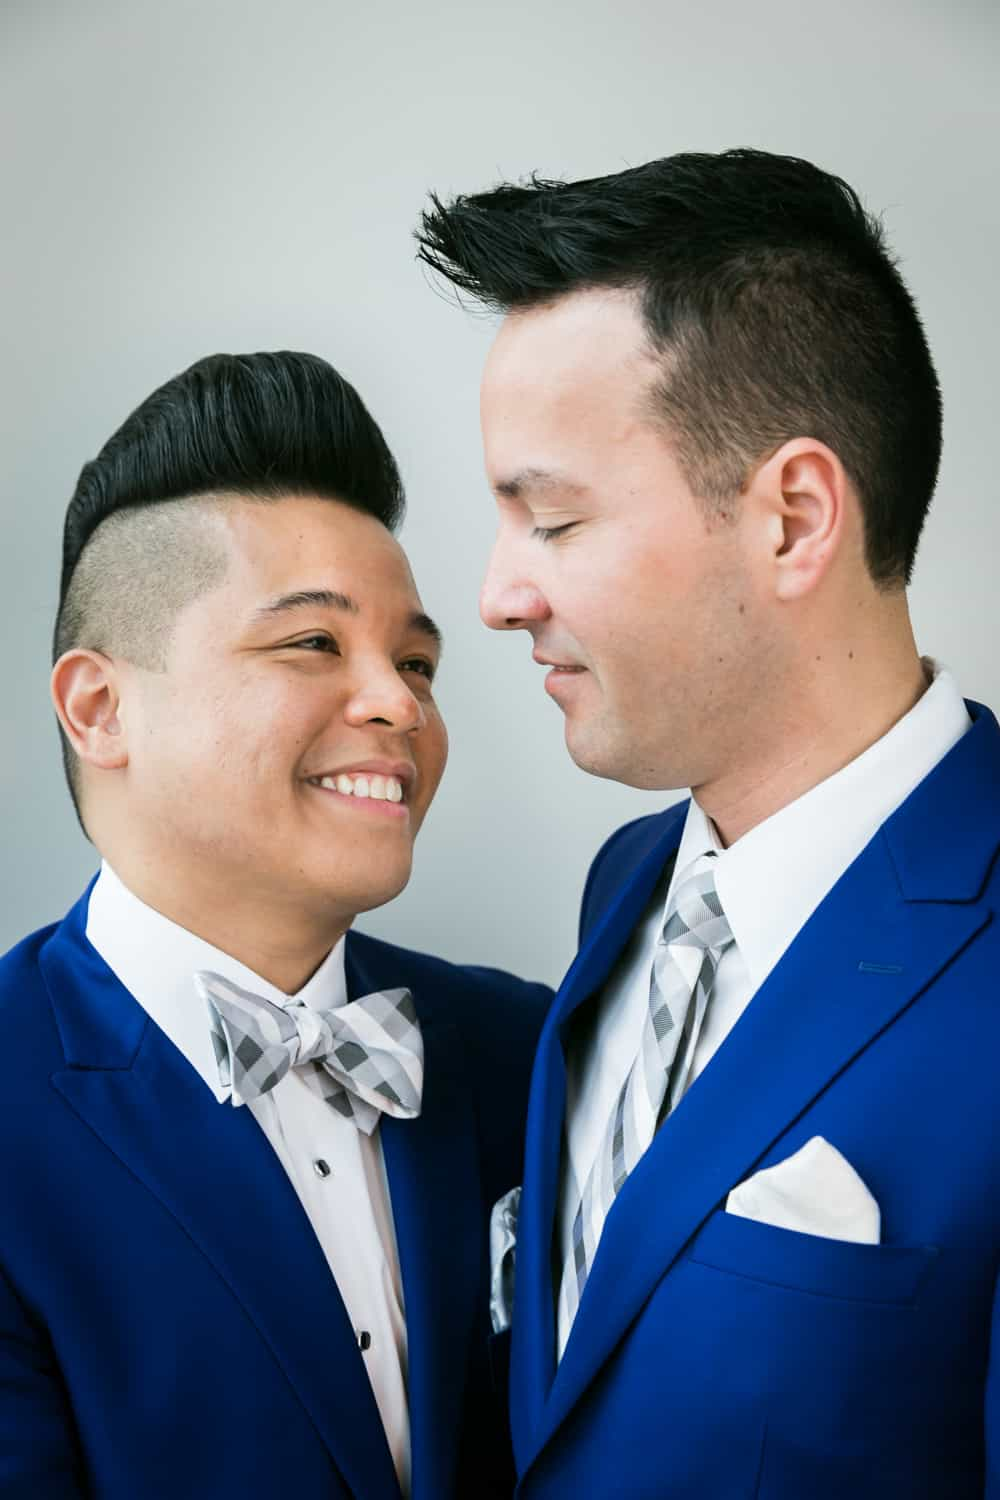 Two grooms in blue suits looking at each other